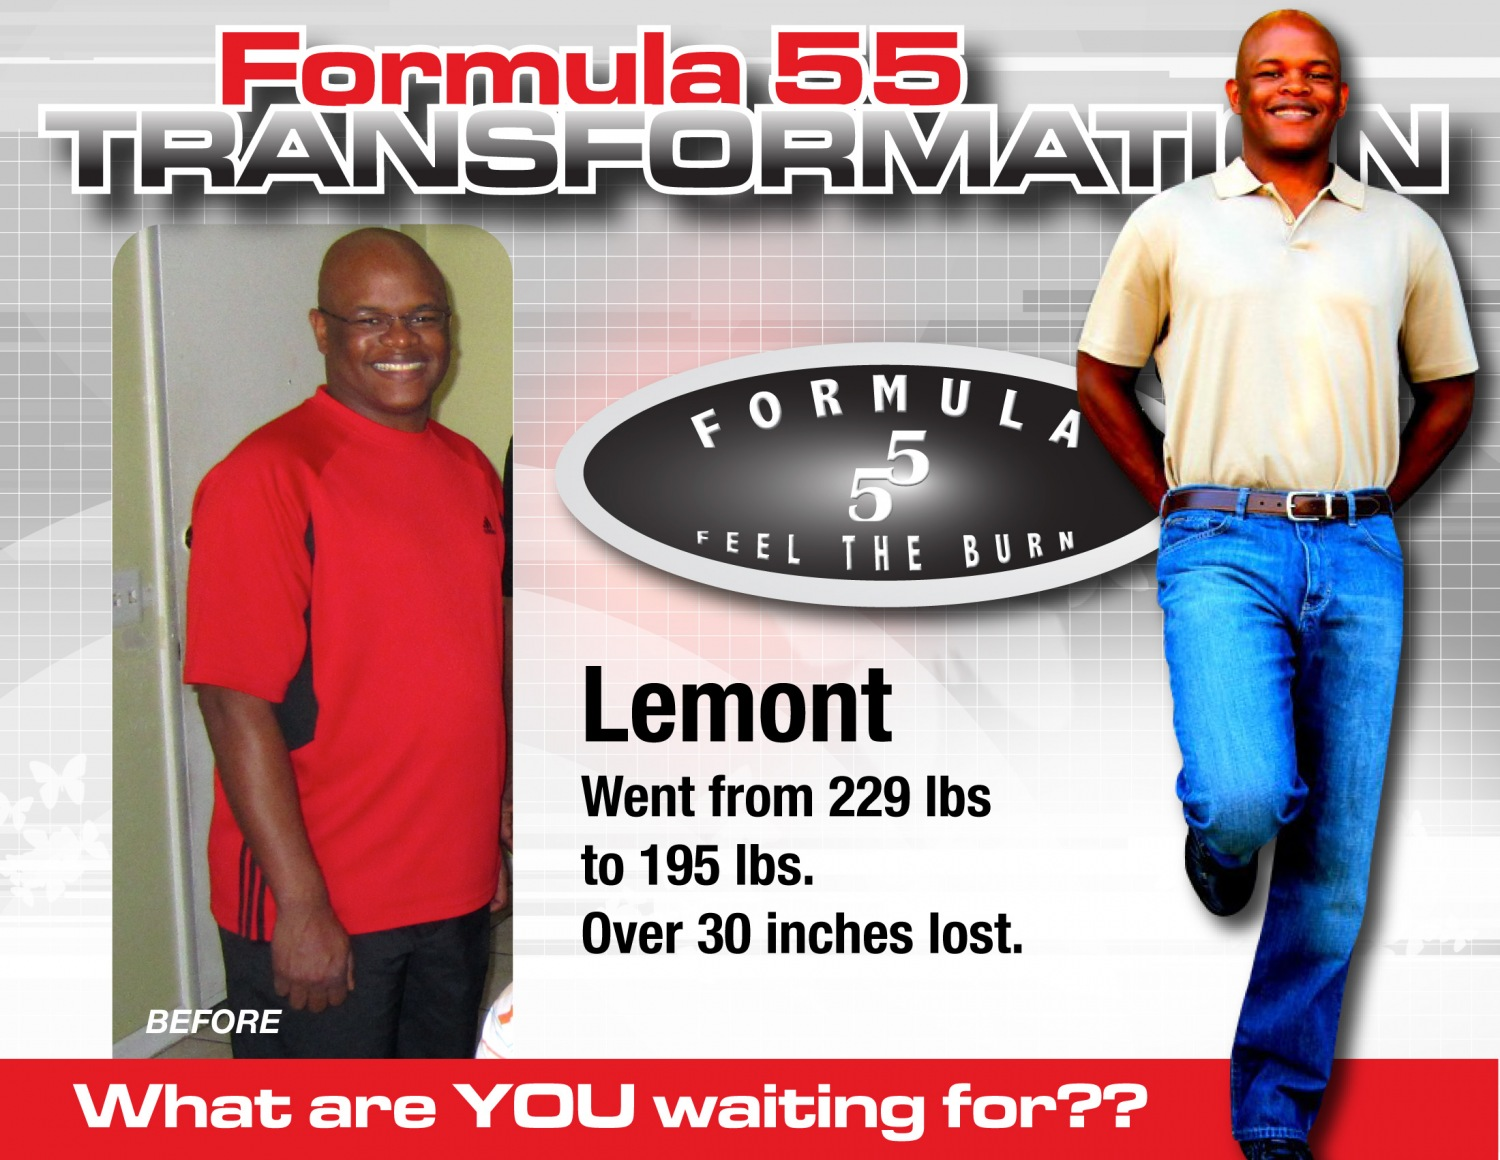 form-55-Transformation-lemont.jpg